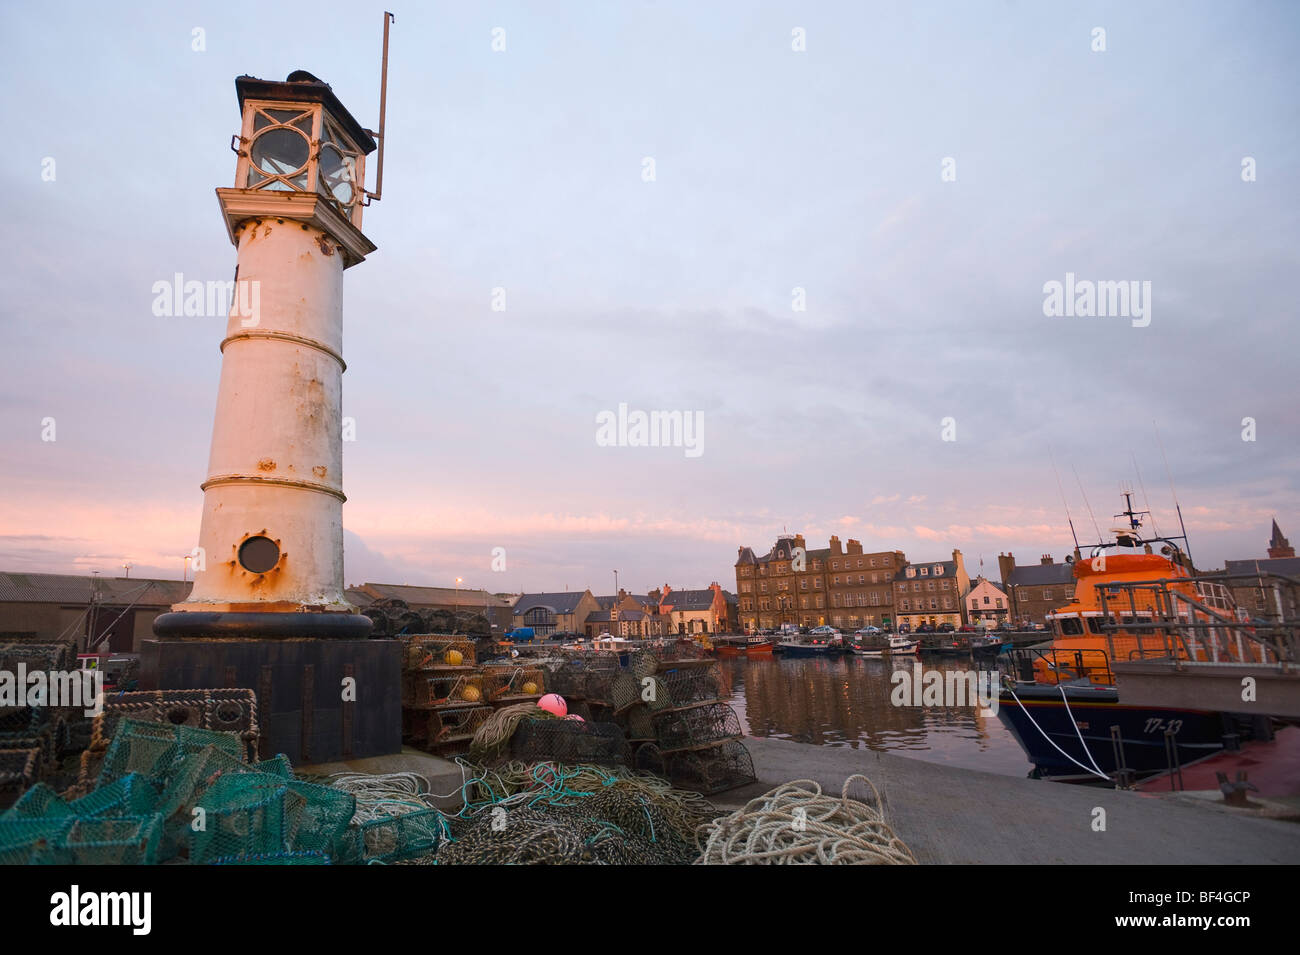 Lighthouse at the harbor, Kirkwall, Orkney Islands, Scotland, United Kingdom, Europe - Stock Image